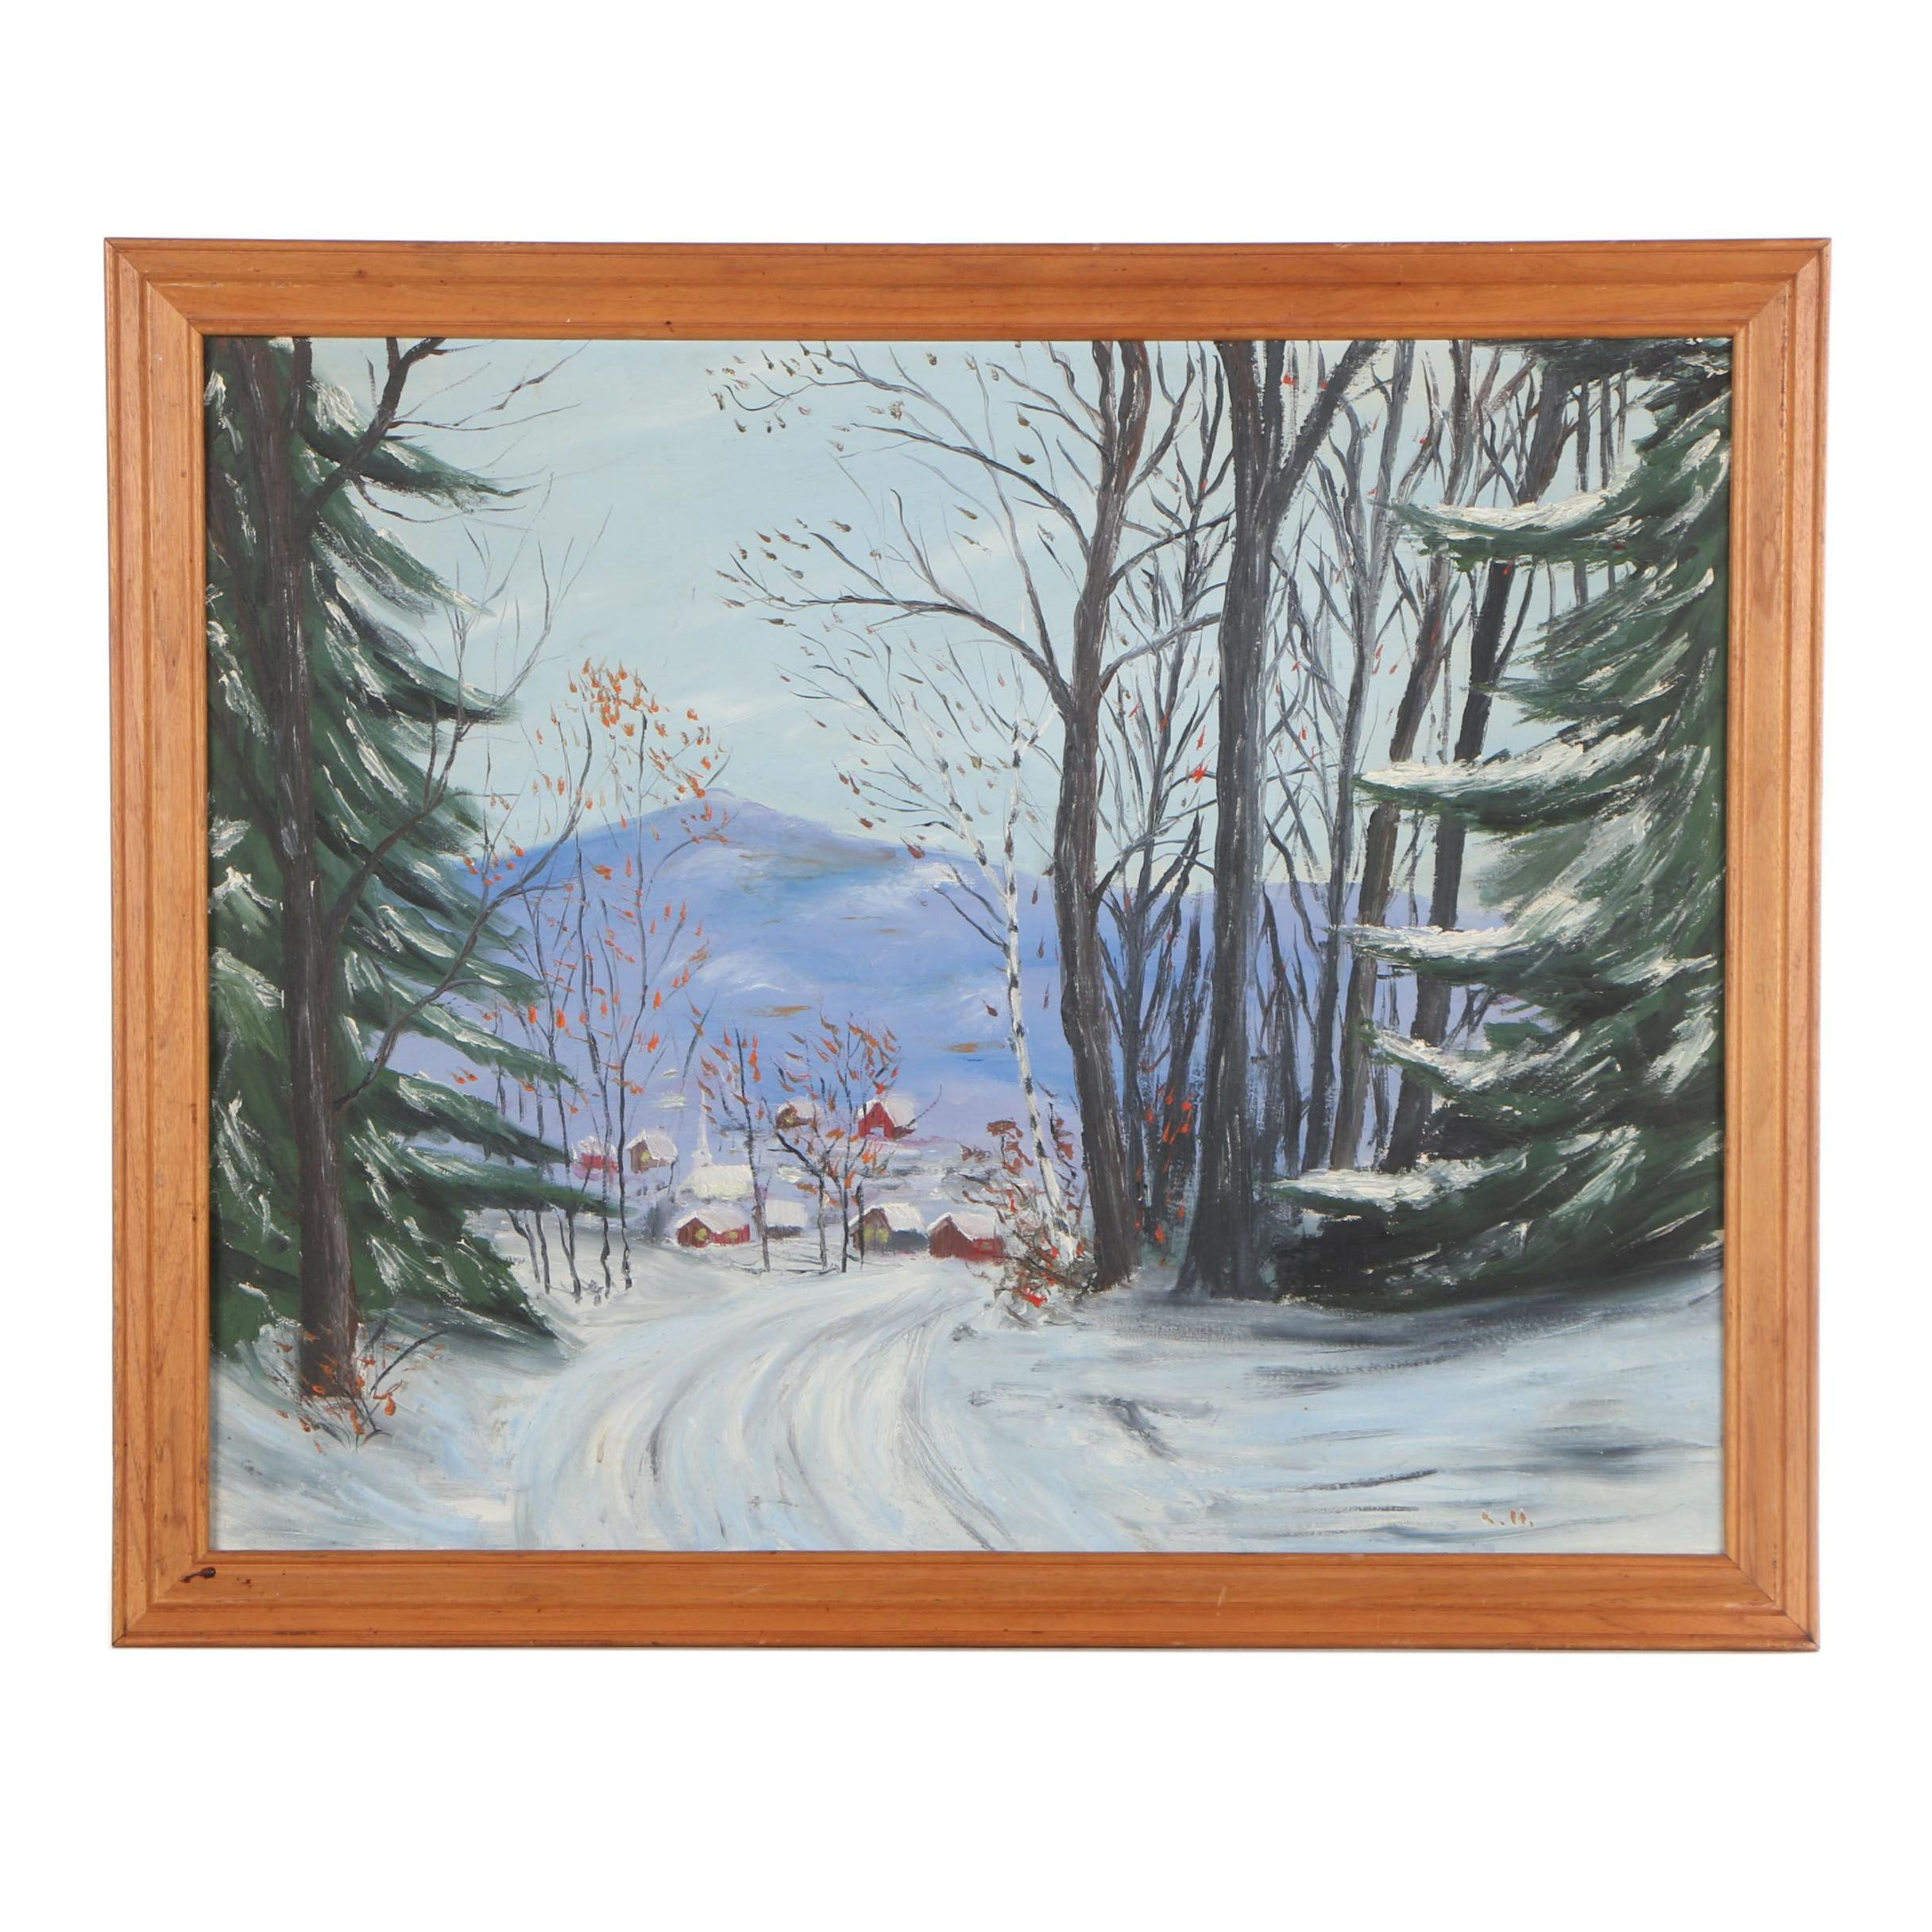 K. Hemlock Oil Painting of Winter Landscape